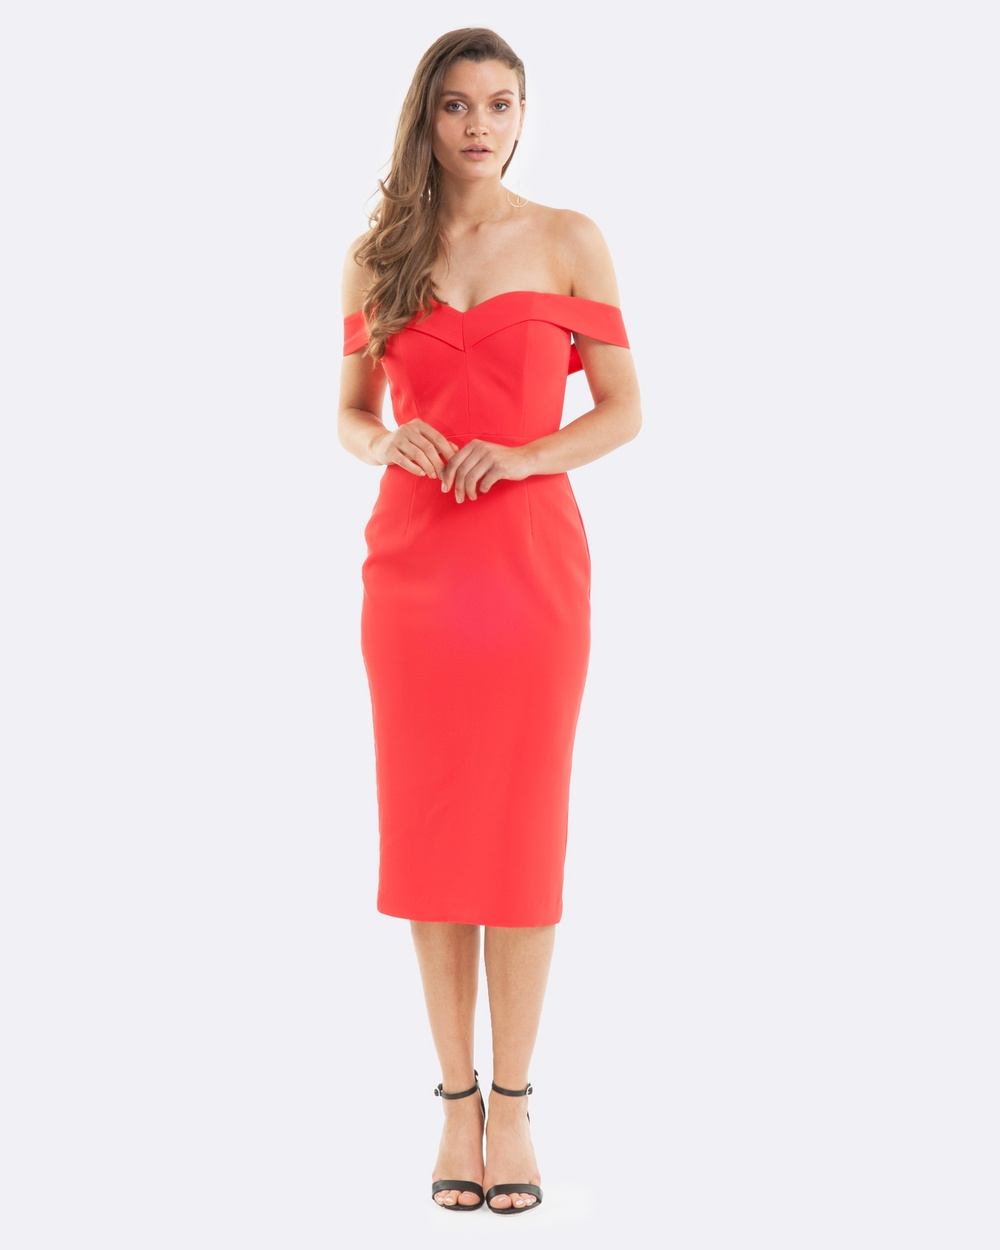 Amelius Moonlit Palm Dress Dresses Scarlet Moonlit Palm Dress